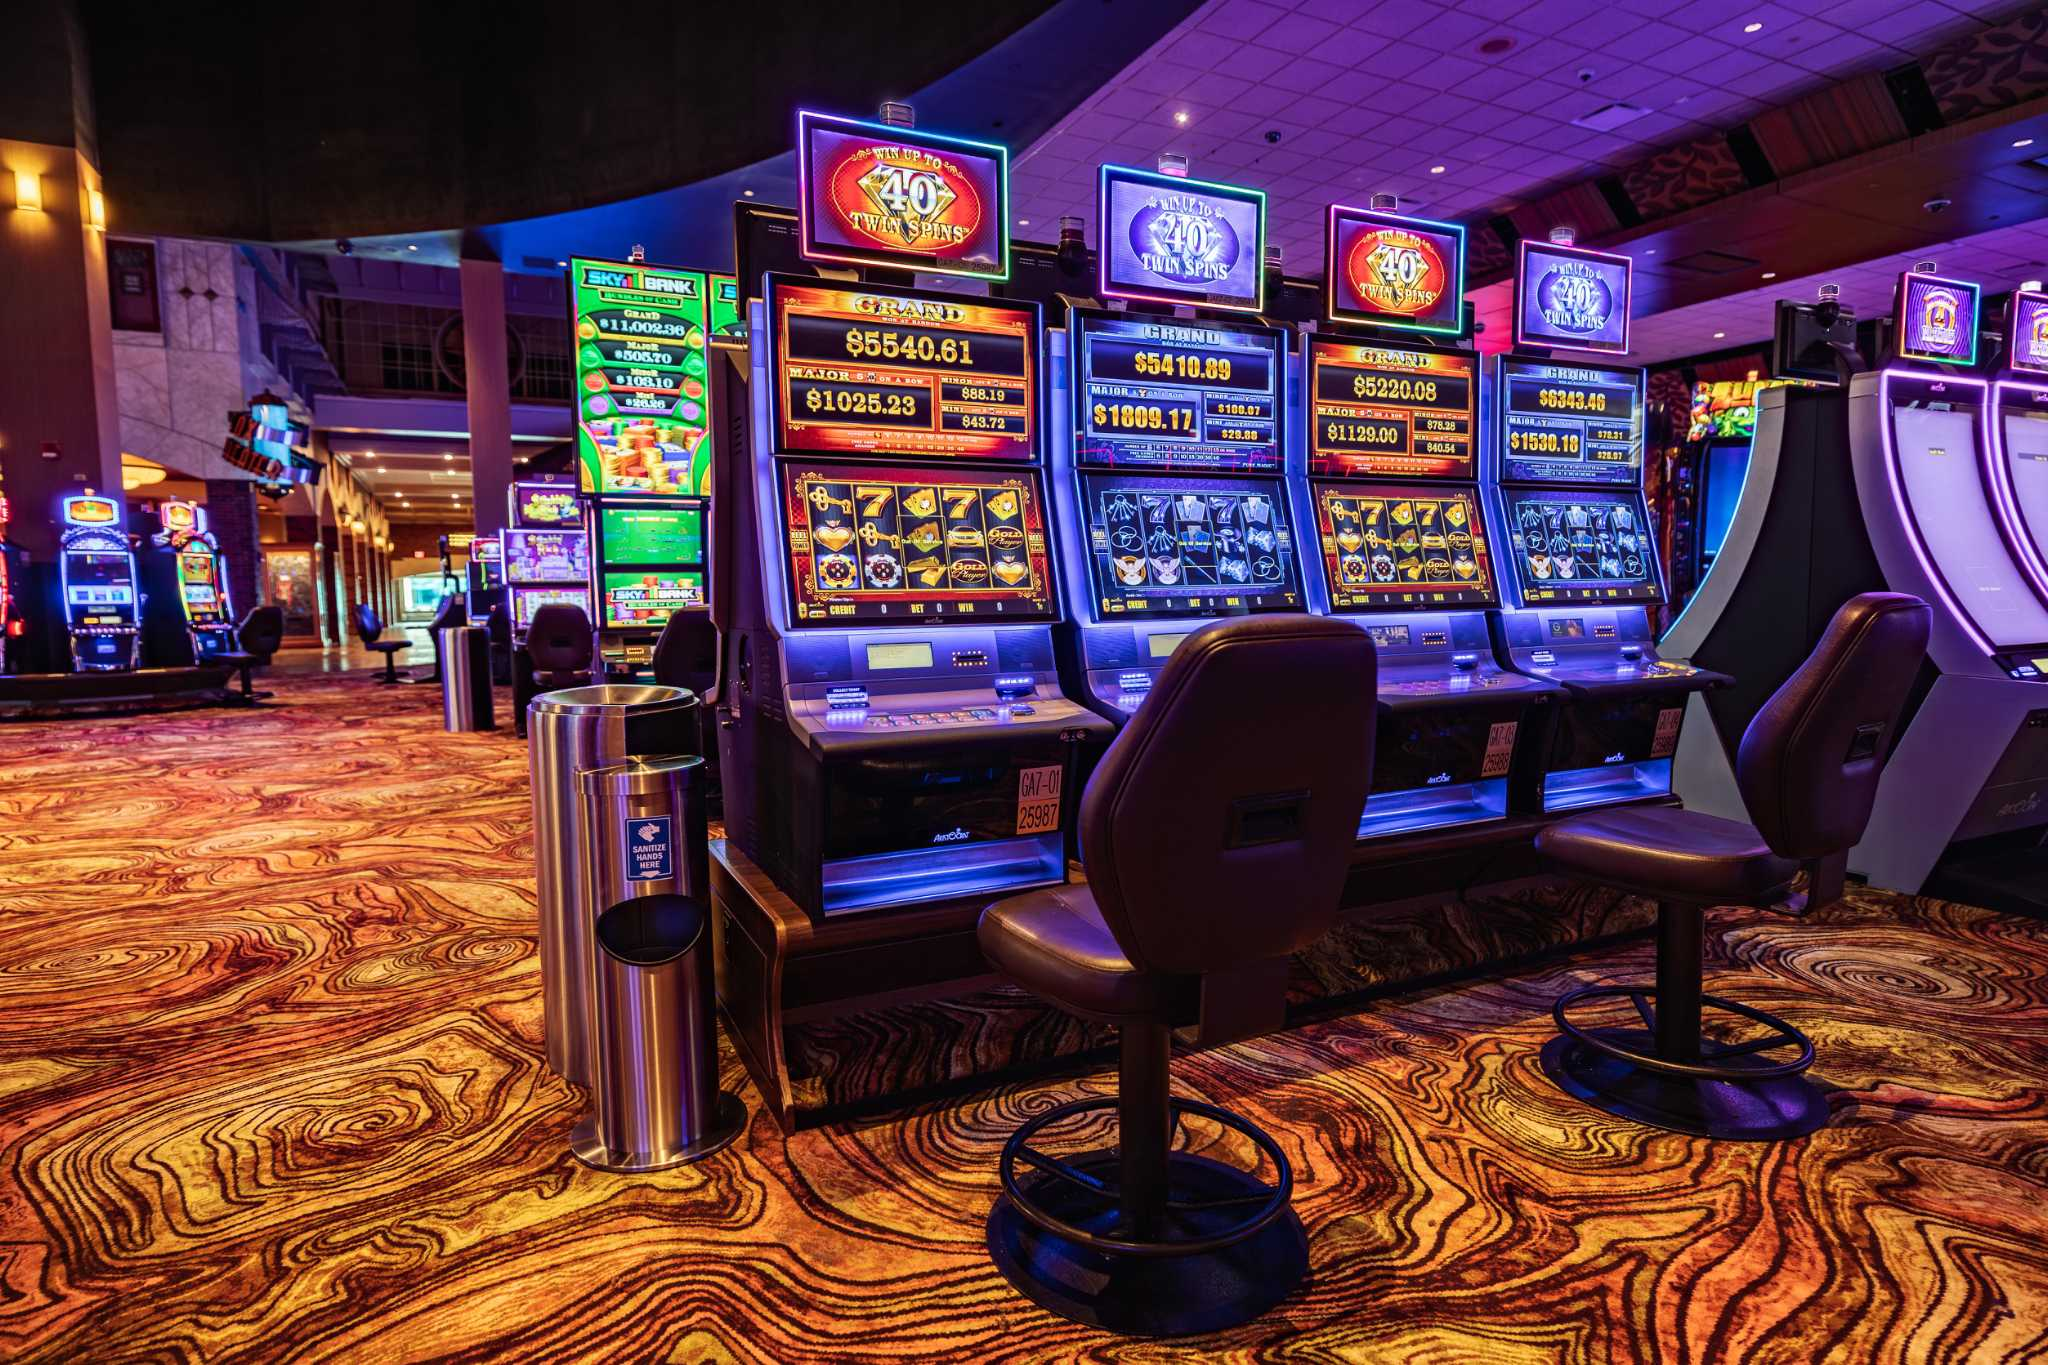 In photos: Inside Connecticut's casinos after reopening